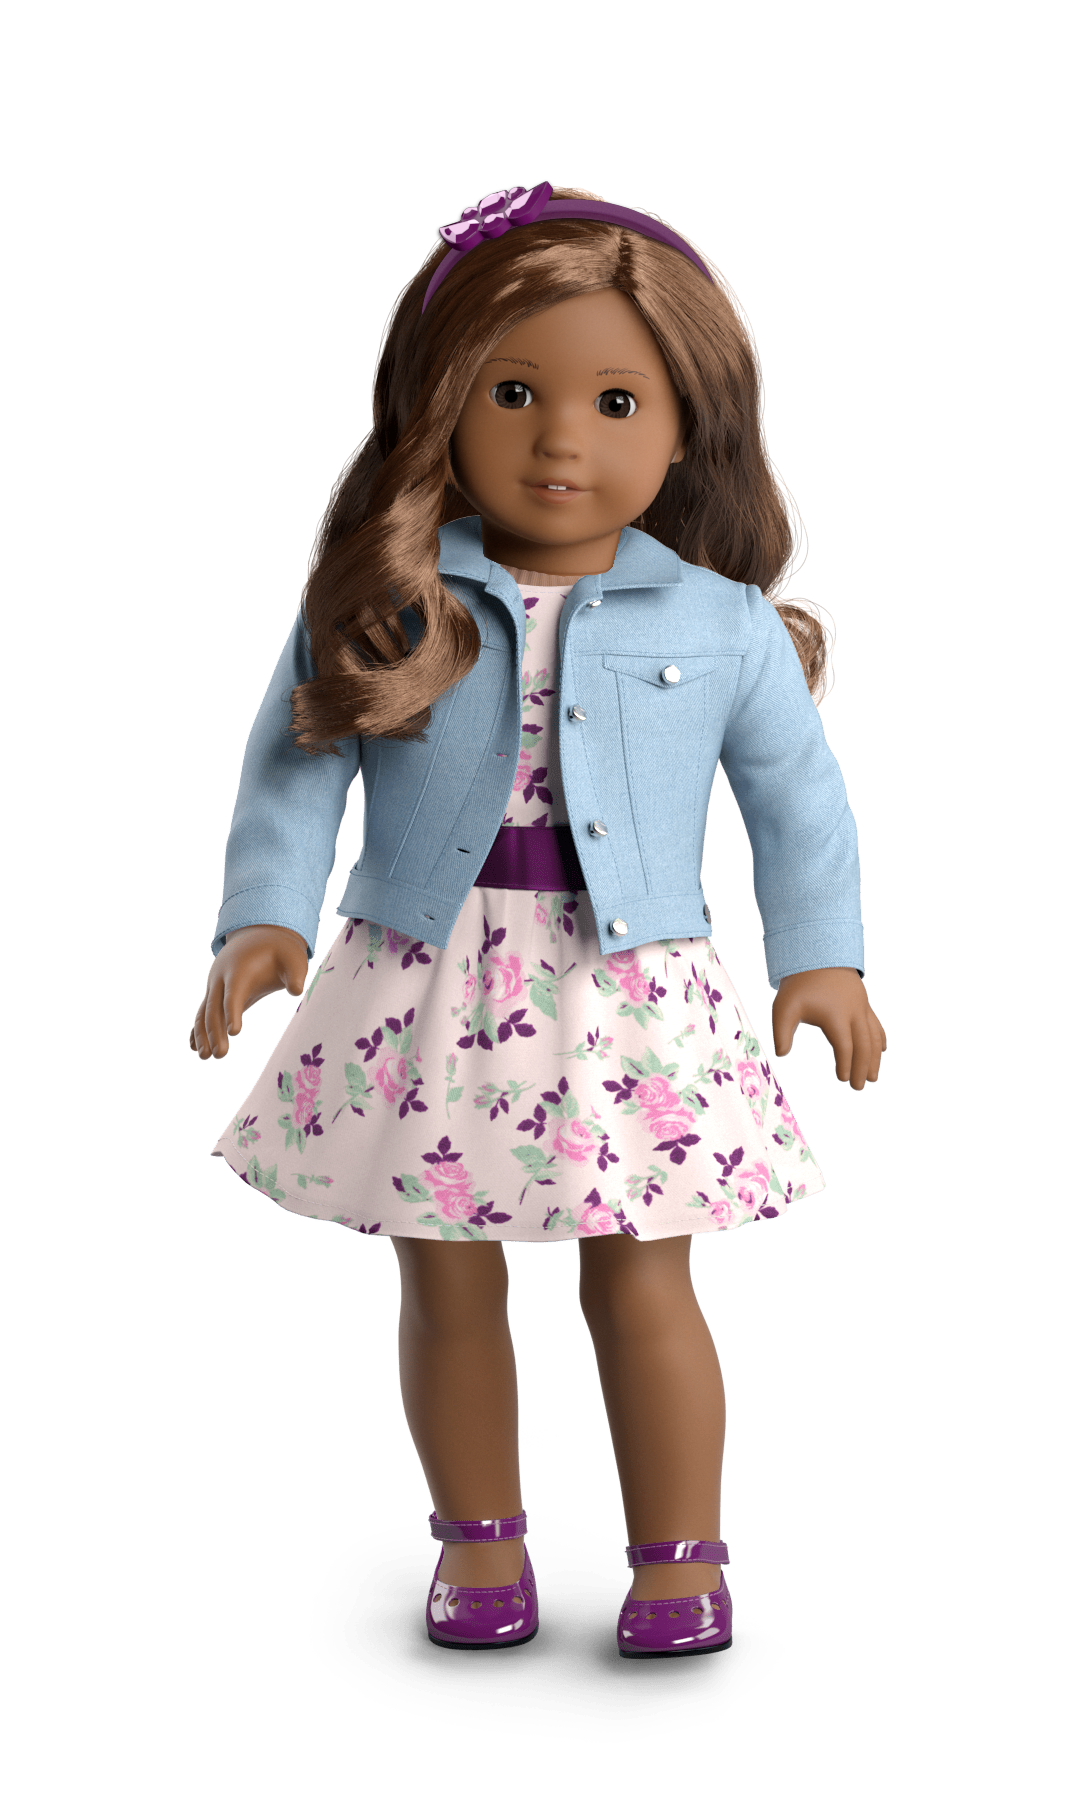 American girl png. Create your own one